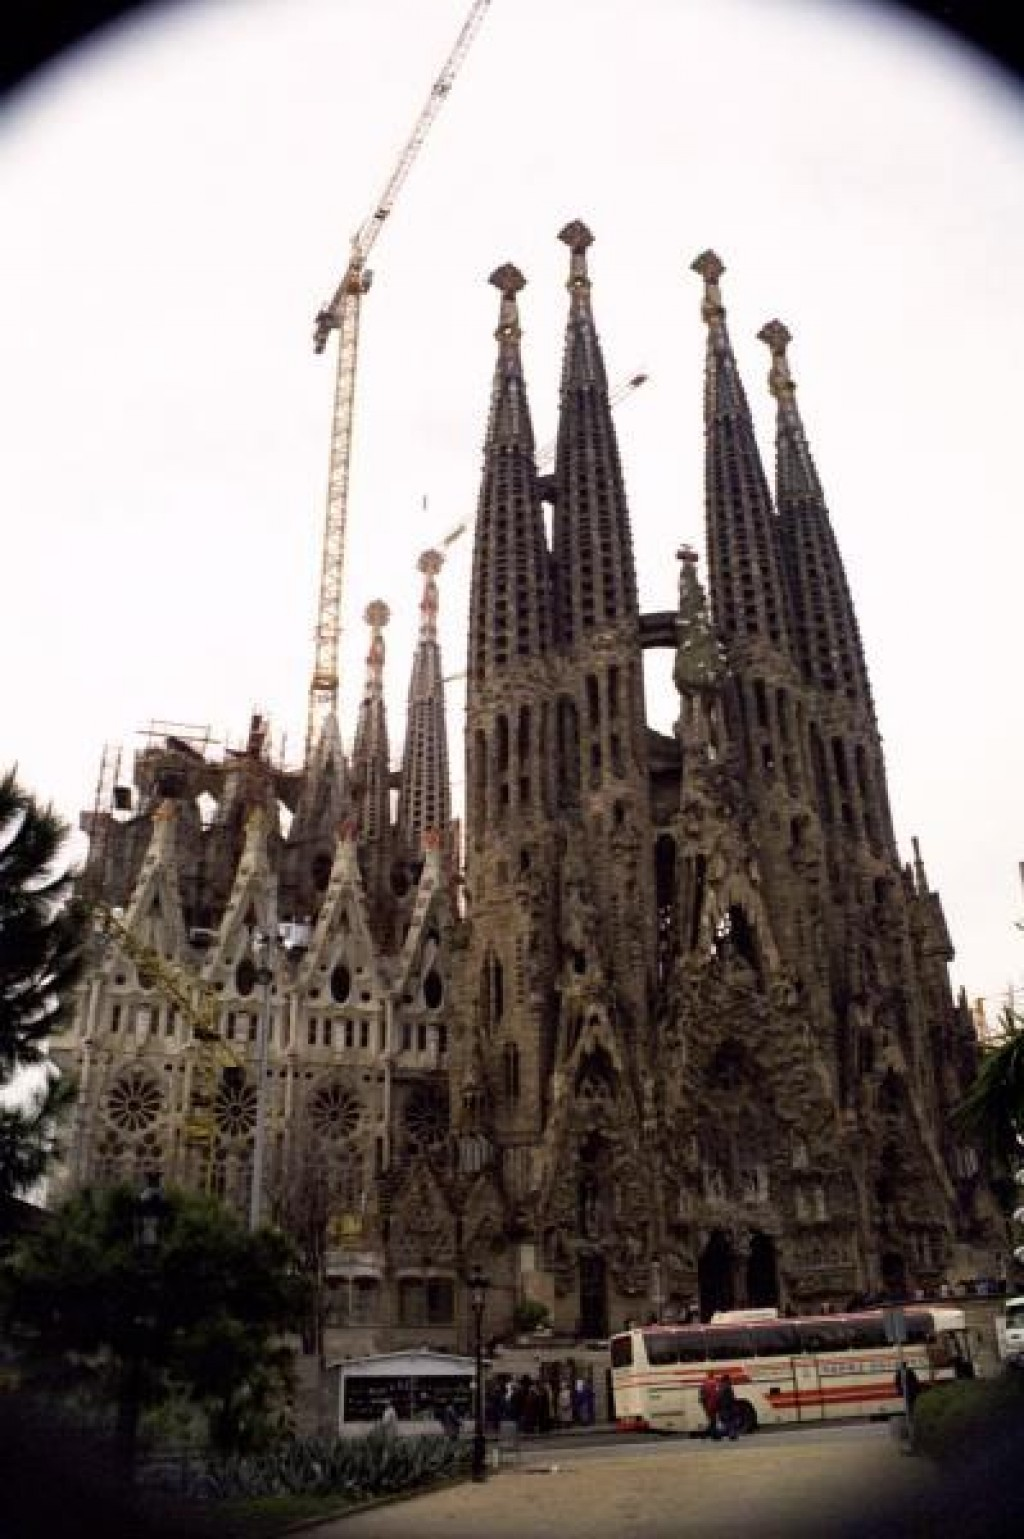 The half-finished Sagrada Familia is another one of Gaudi's creations.  Construction continues in ernest today.